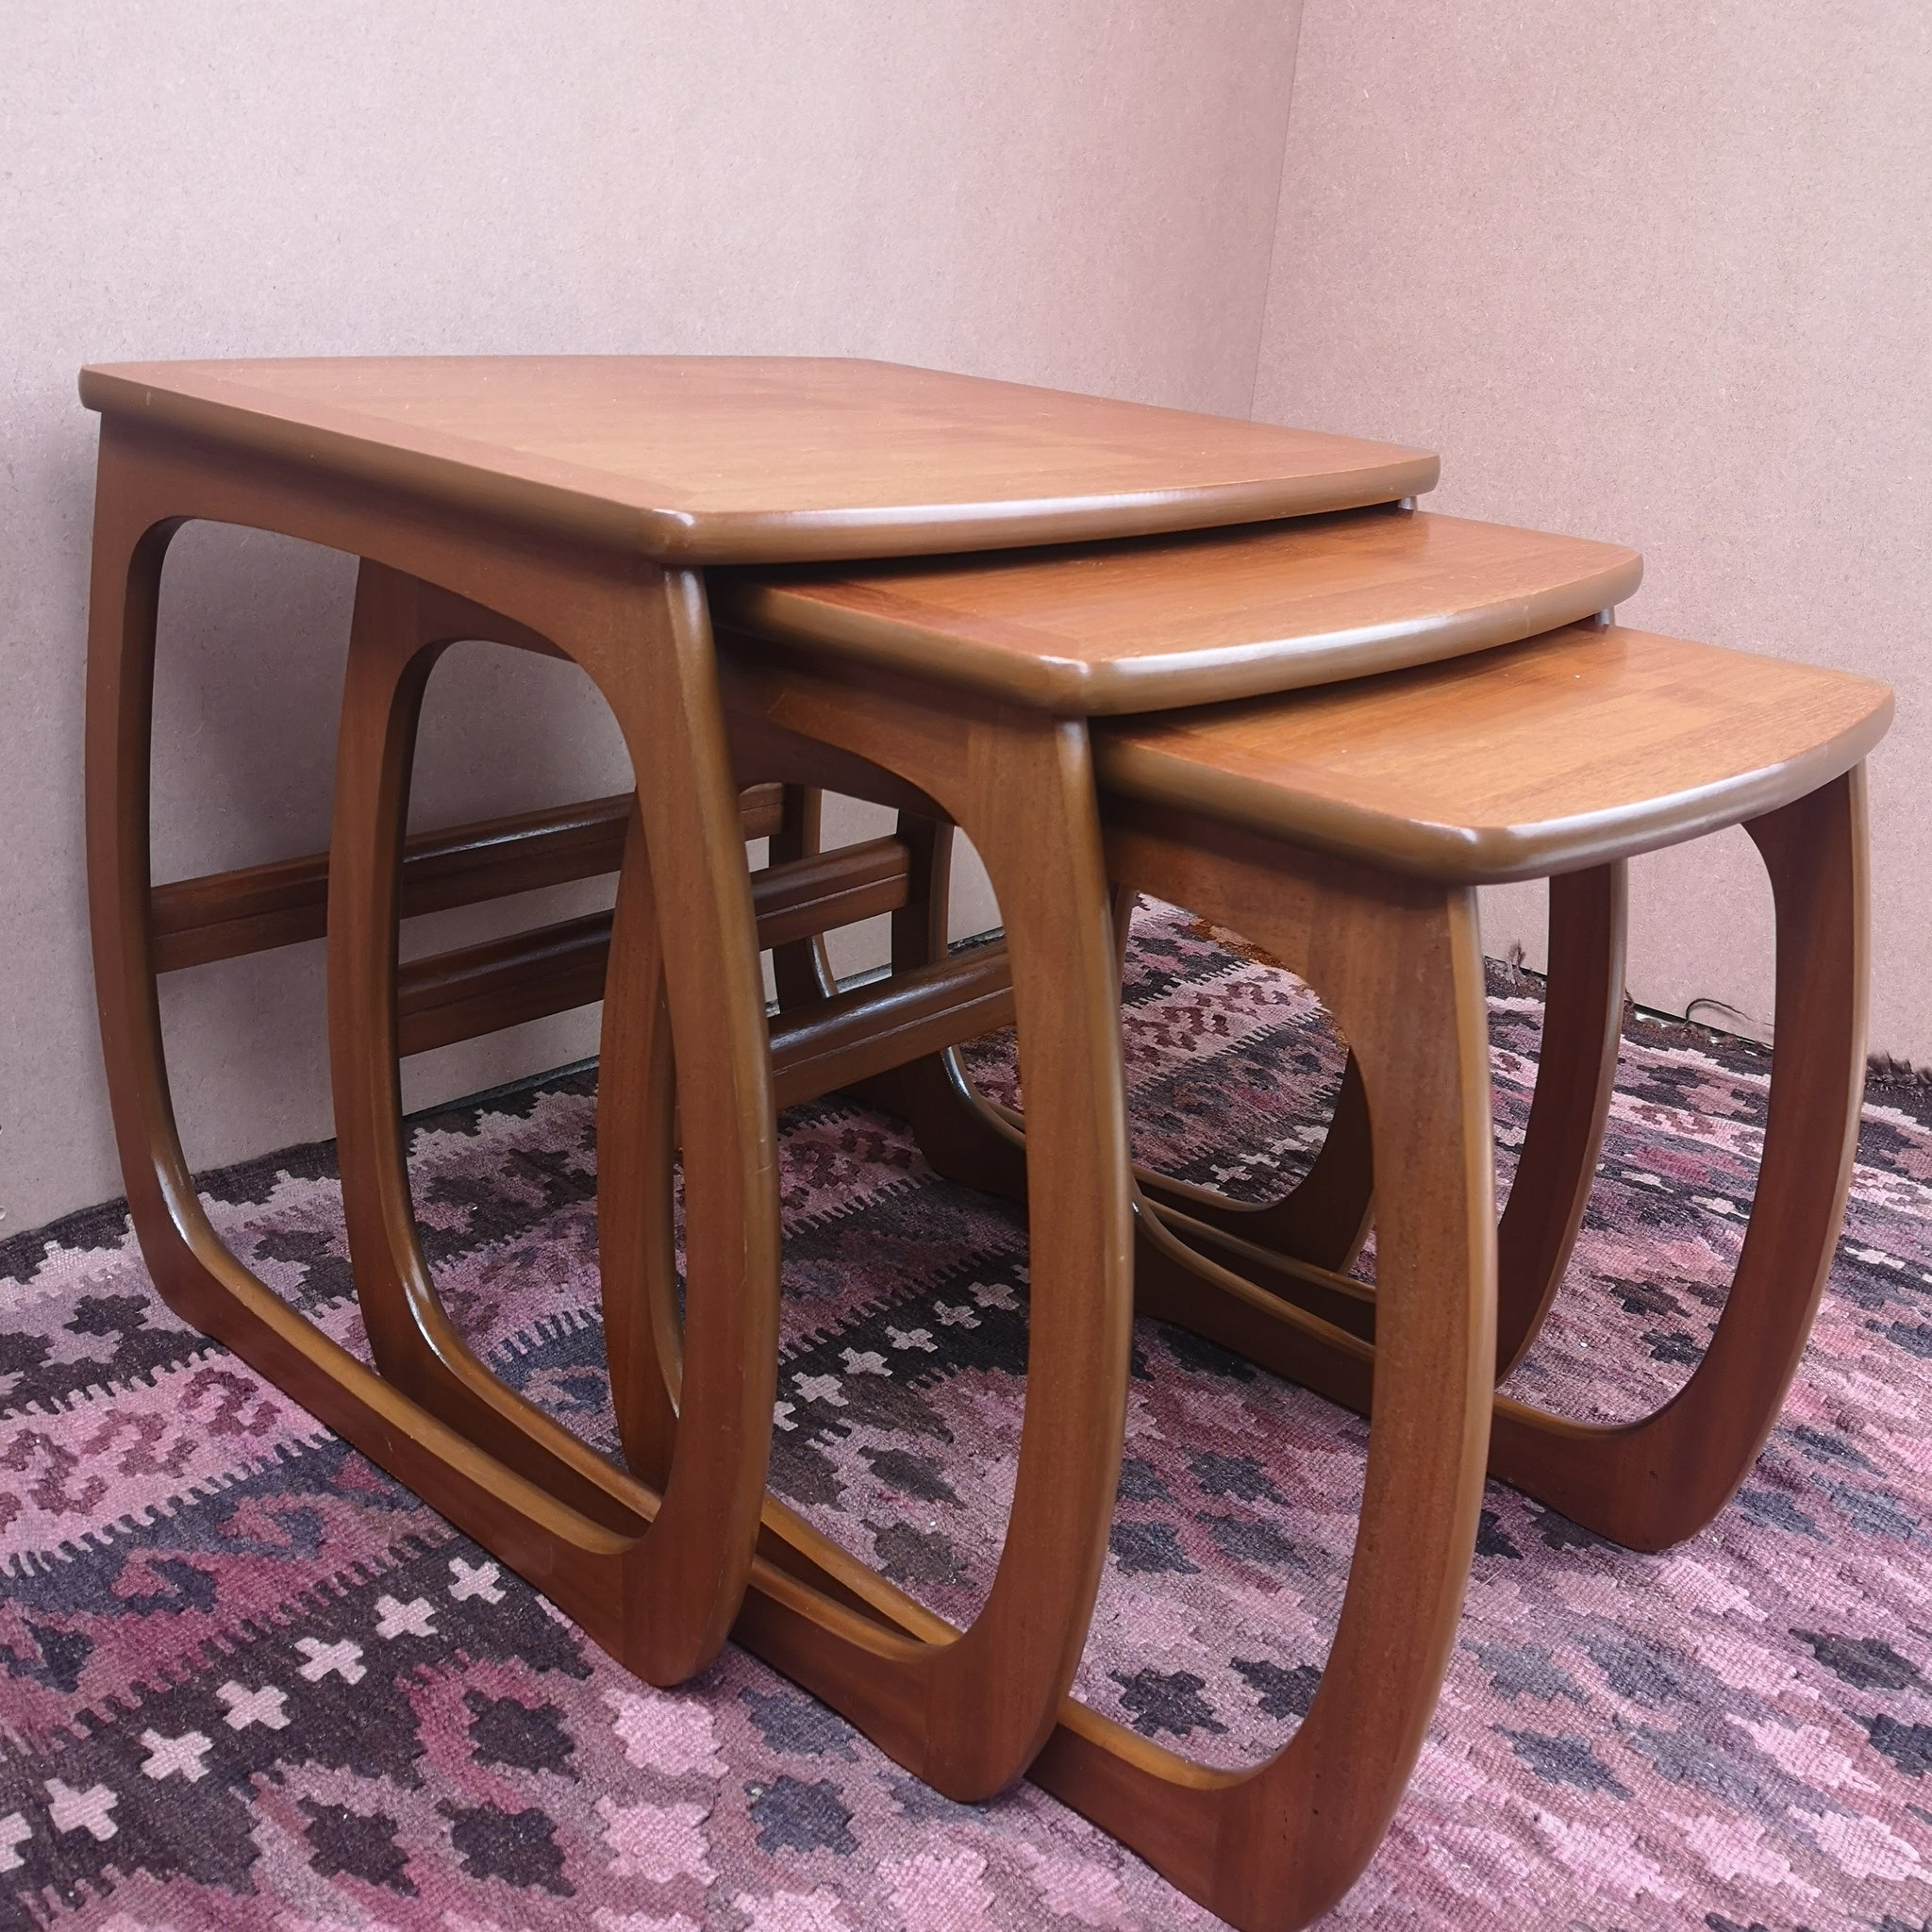 Nathan Teak Burlington Nest of Tables